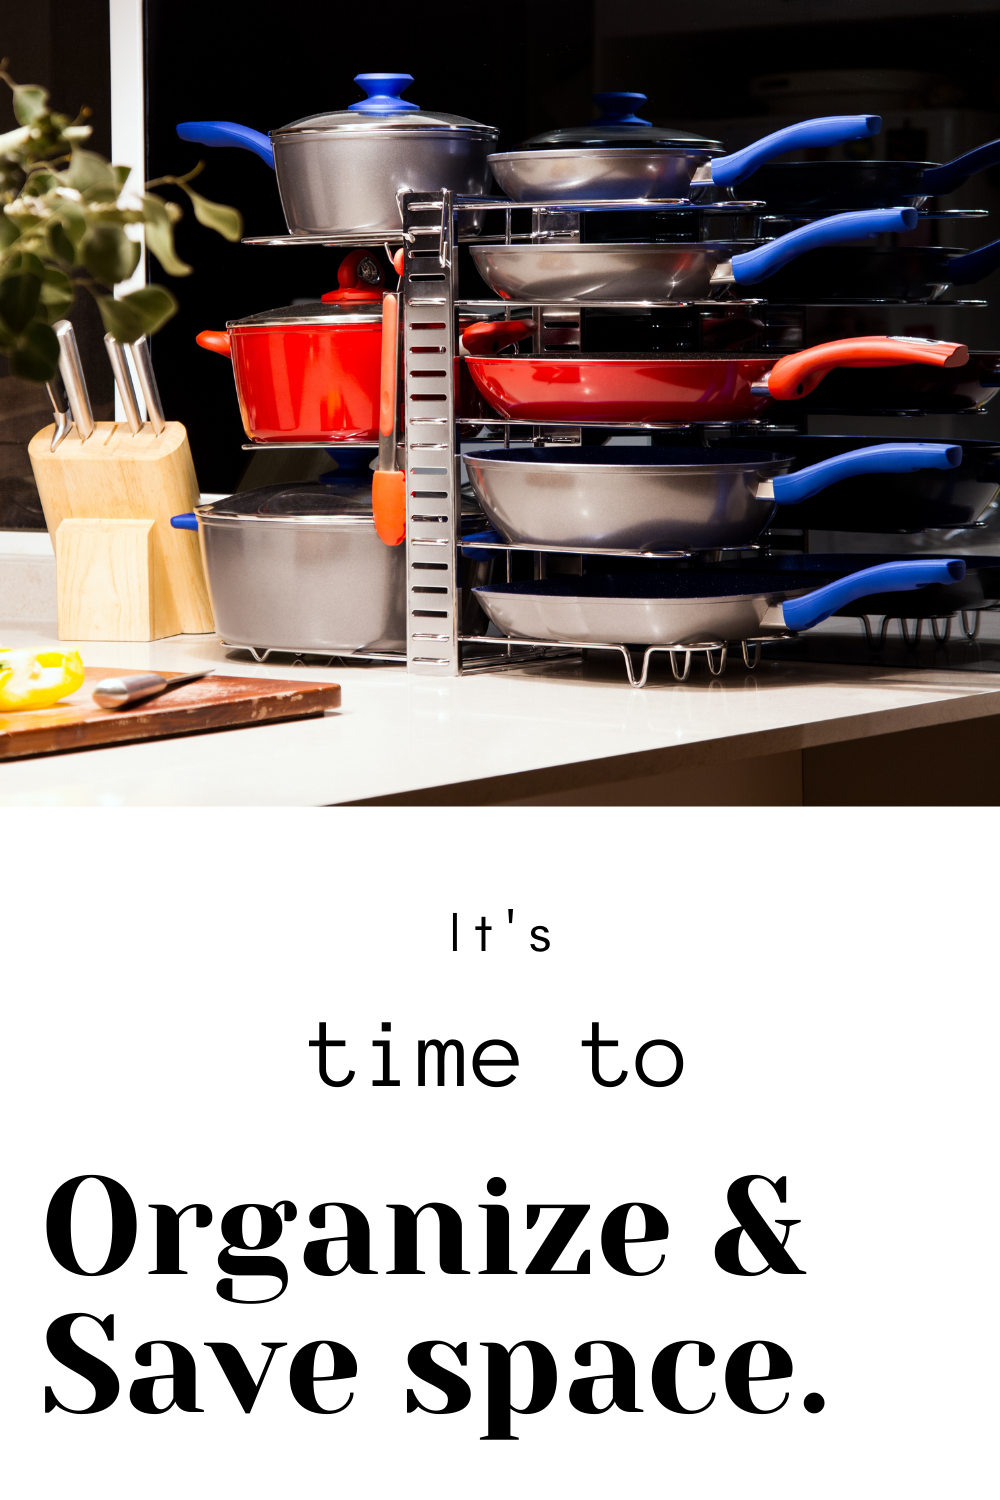 $29.99. Organize your pots and pans neat and safe using this lovely pot and pan organizer. Helps you to stack upto 8 pans and pots. You can store utensil too using the added hooks #panorganizer #potrack #potorganizer #pots #pans #kitchenorganization #kitchenorganizer #kitchenspace #spacesaver #kitchenutensil